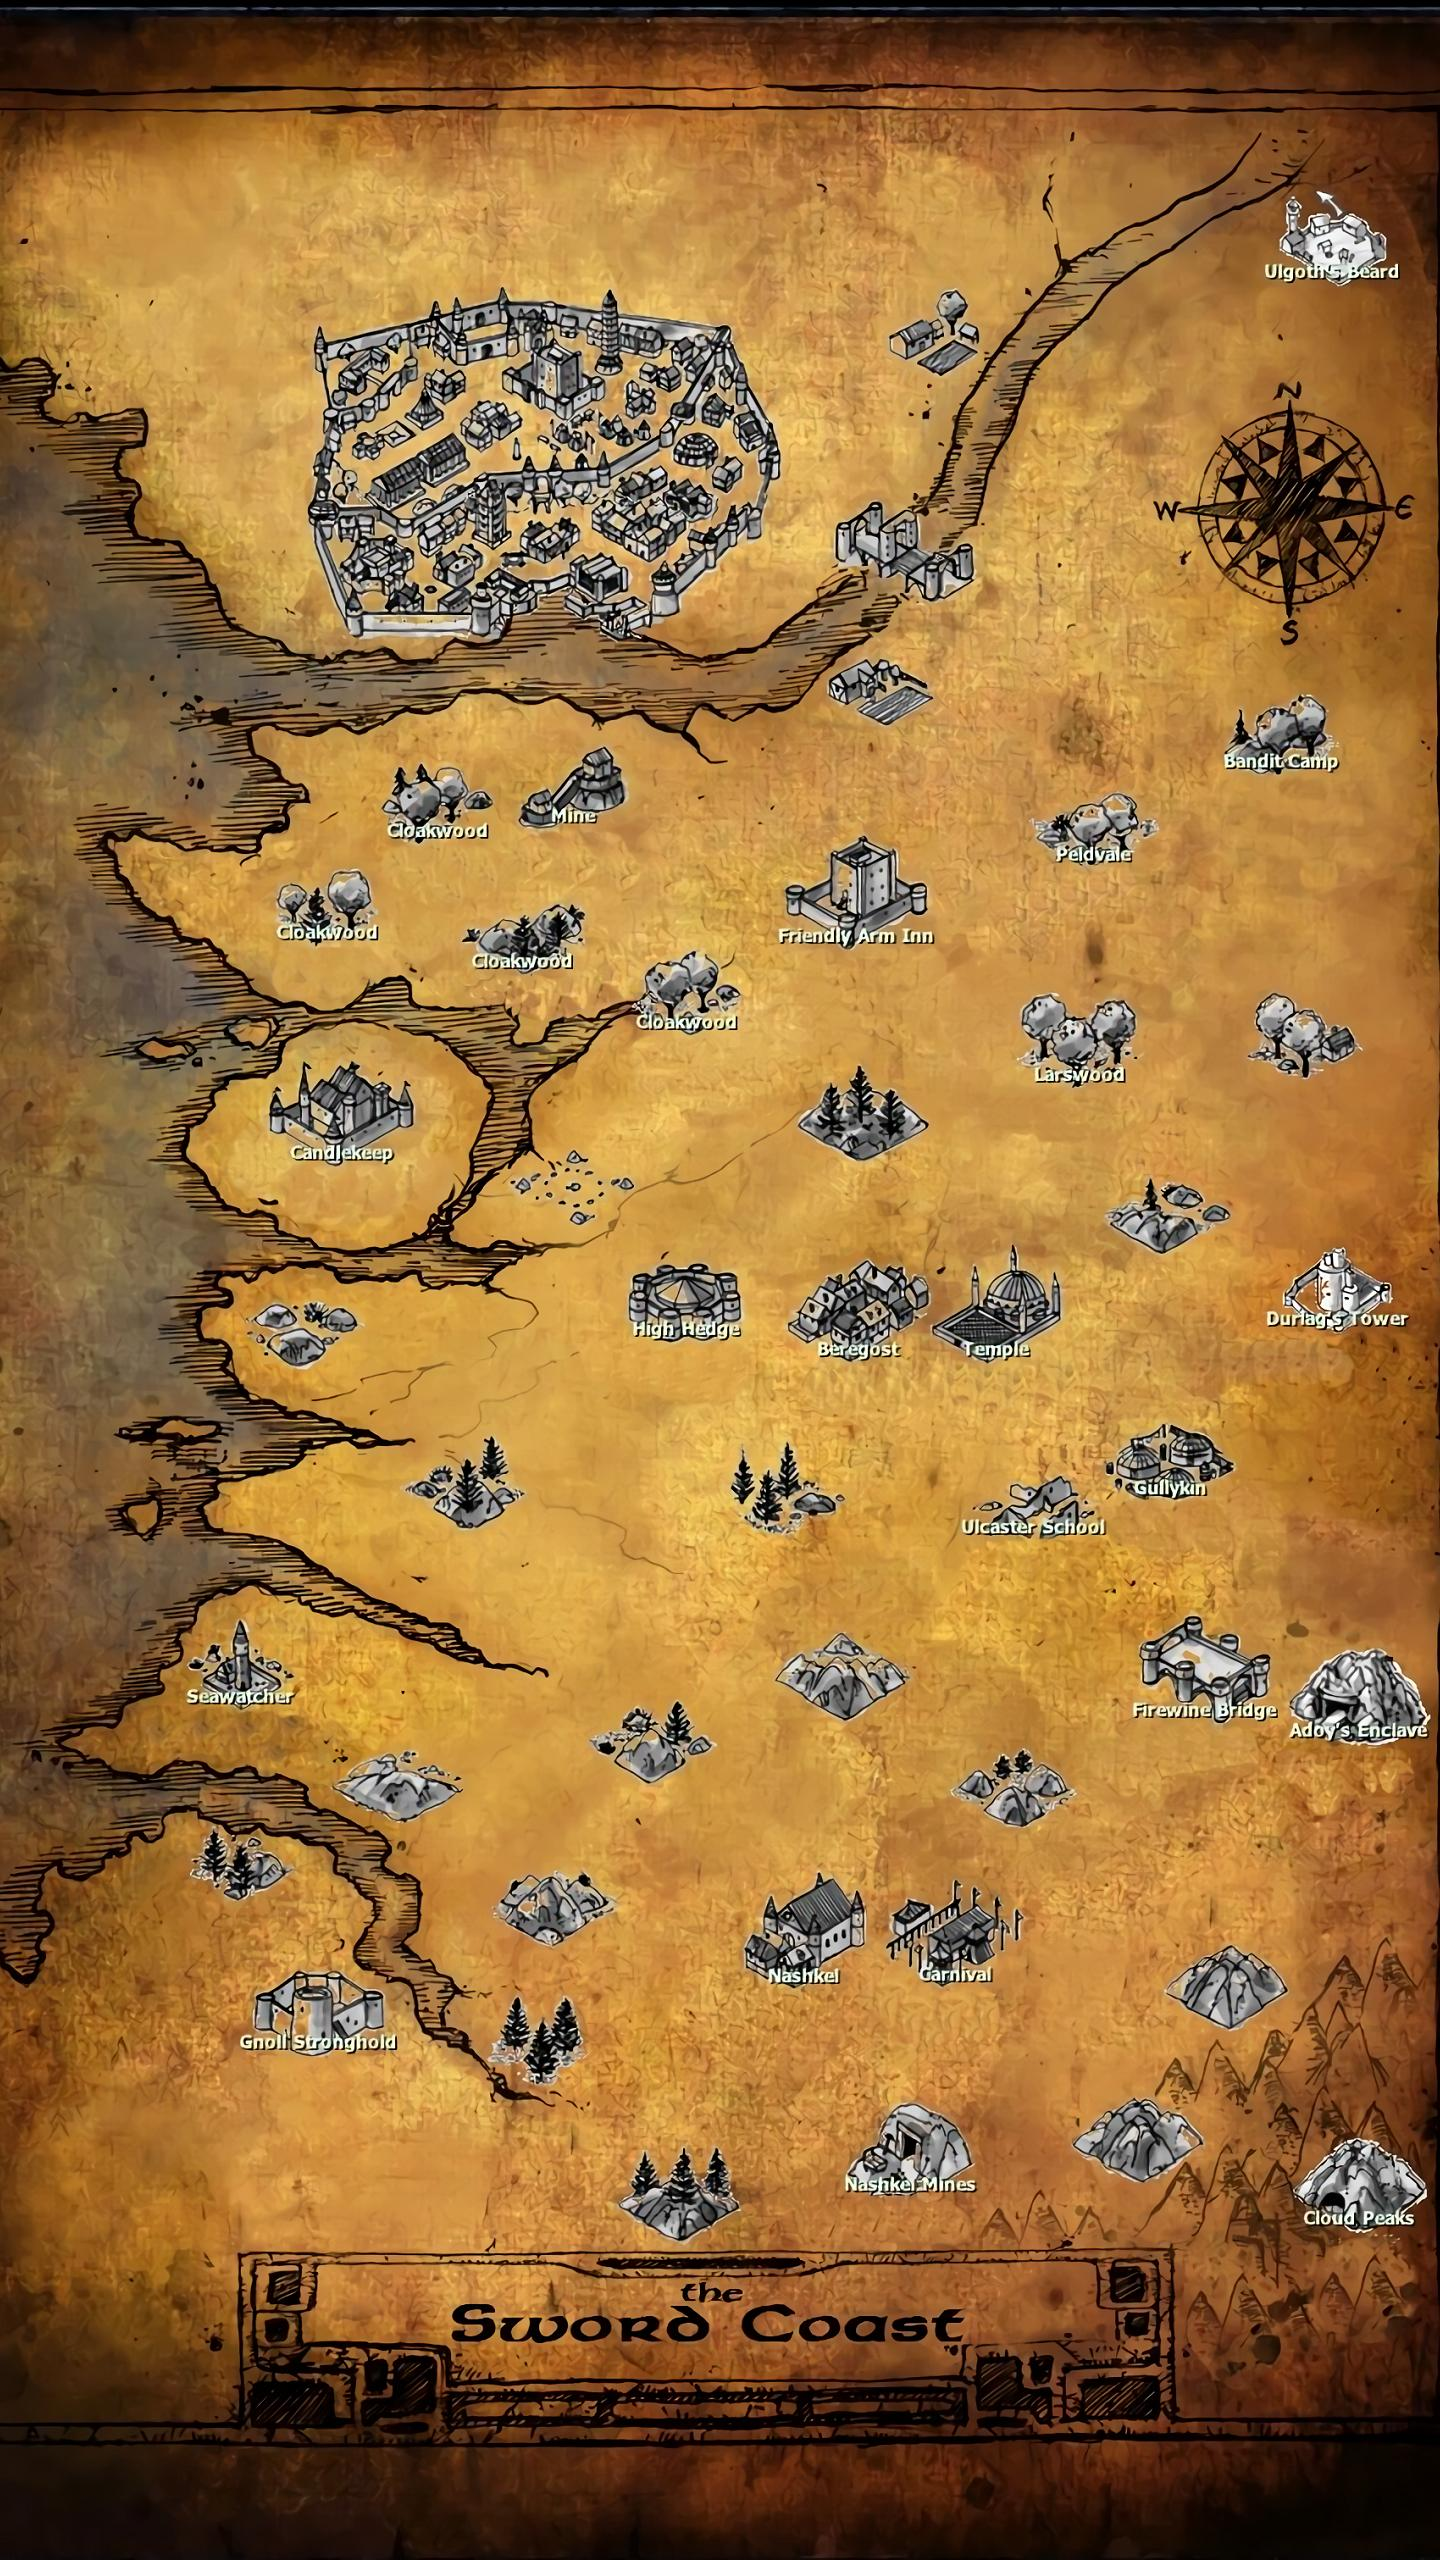 Steam Community :: Guide :: Complete Map of the Sword Coast